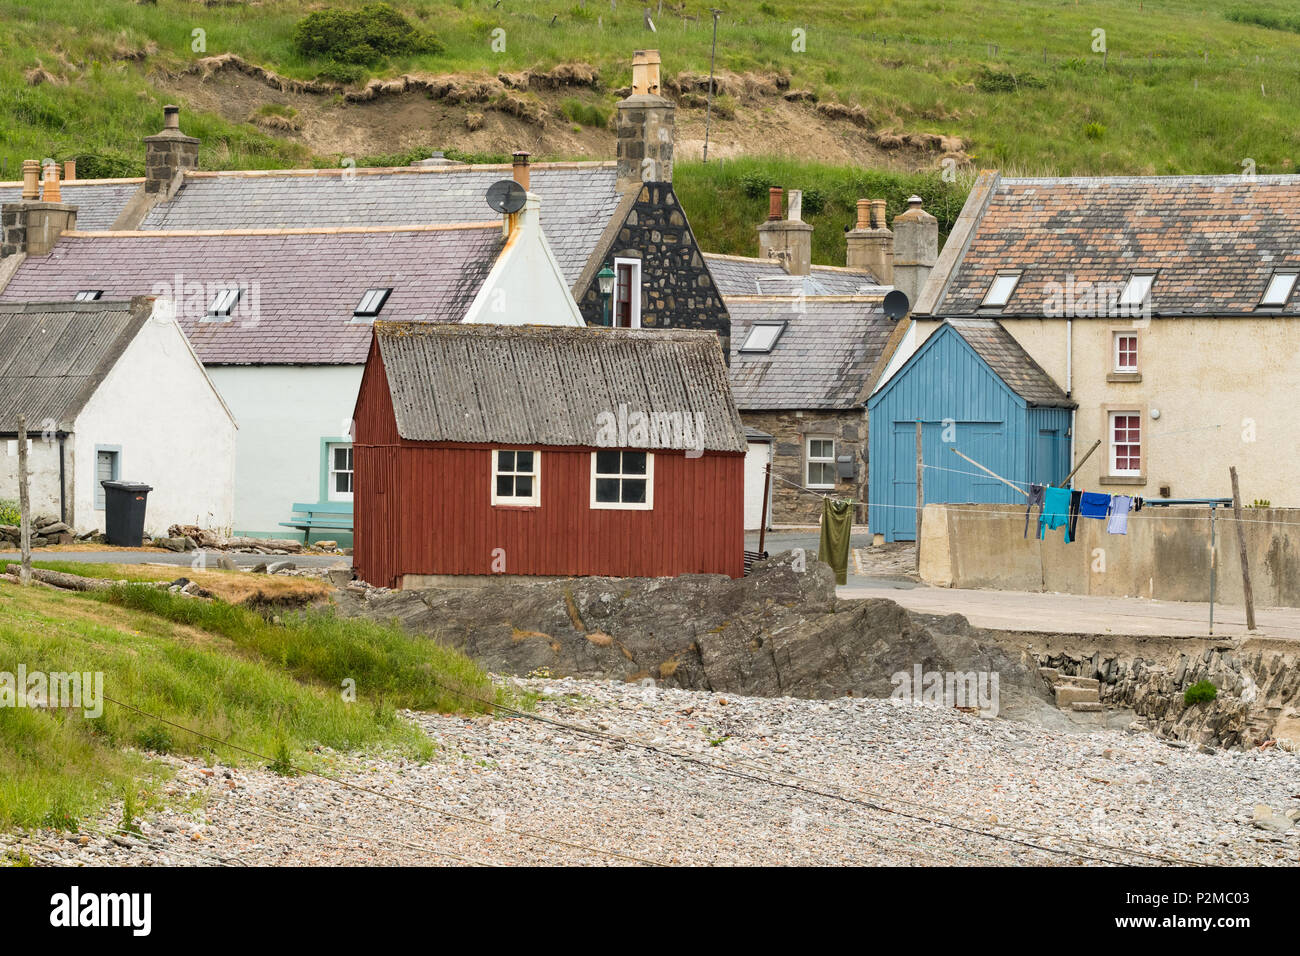 Sandend harbour.  Sandend is an old fishing village on the Moray Firth Coast, Aberdeenshire, Scotland, UK - Stock Image